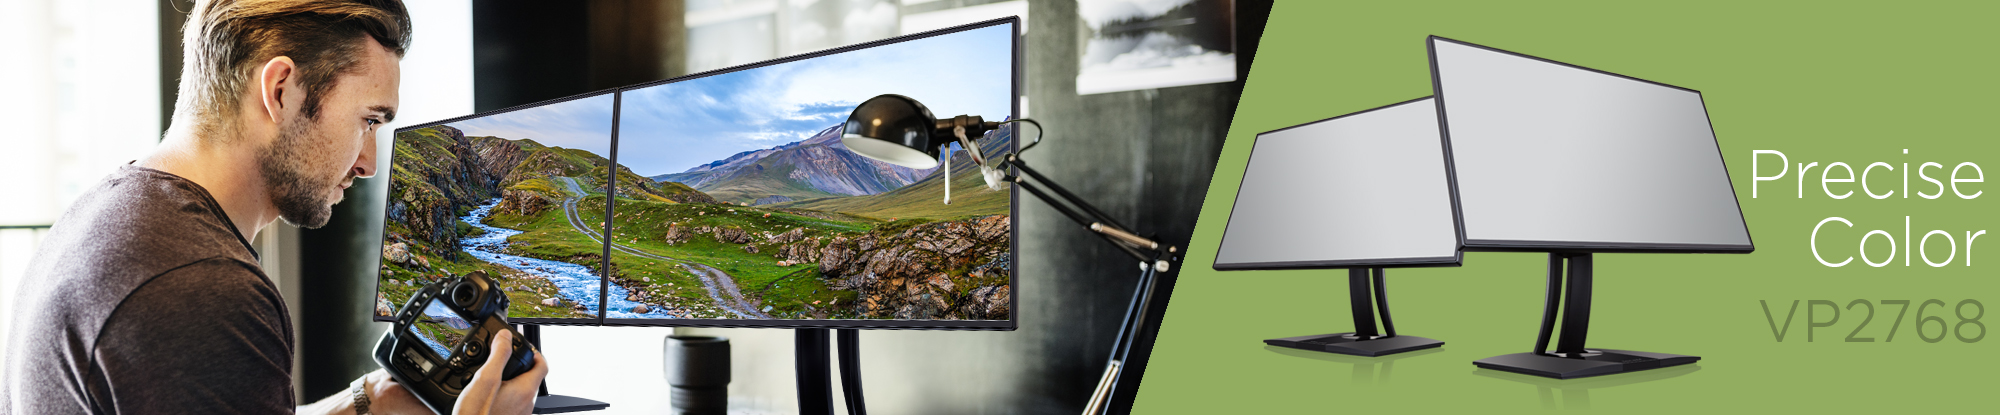 ViewSonic Introduces New Professional Monitor that Delivers Color Accuracy, Uniformity and Processing for Vivid, Color-Critical Applications